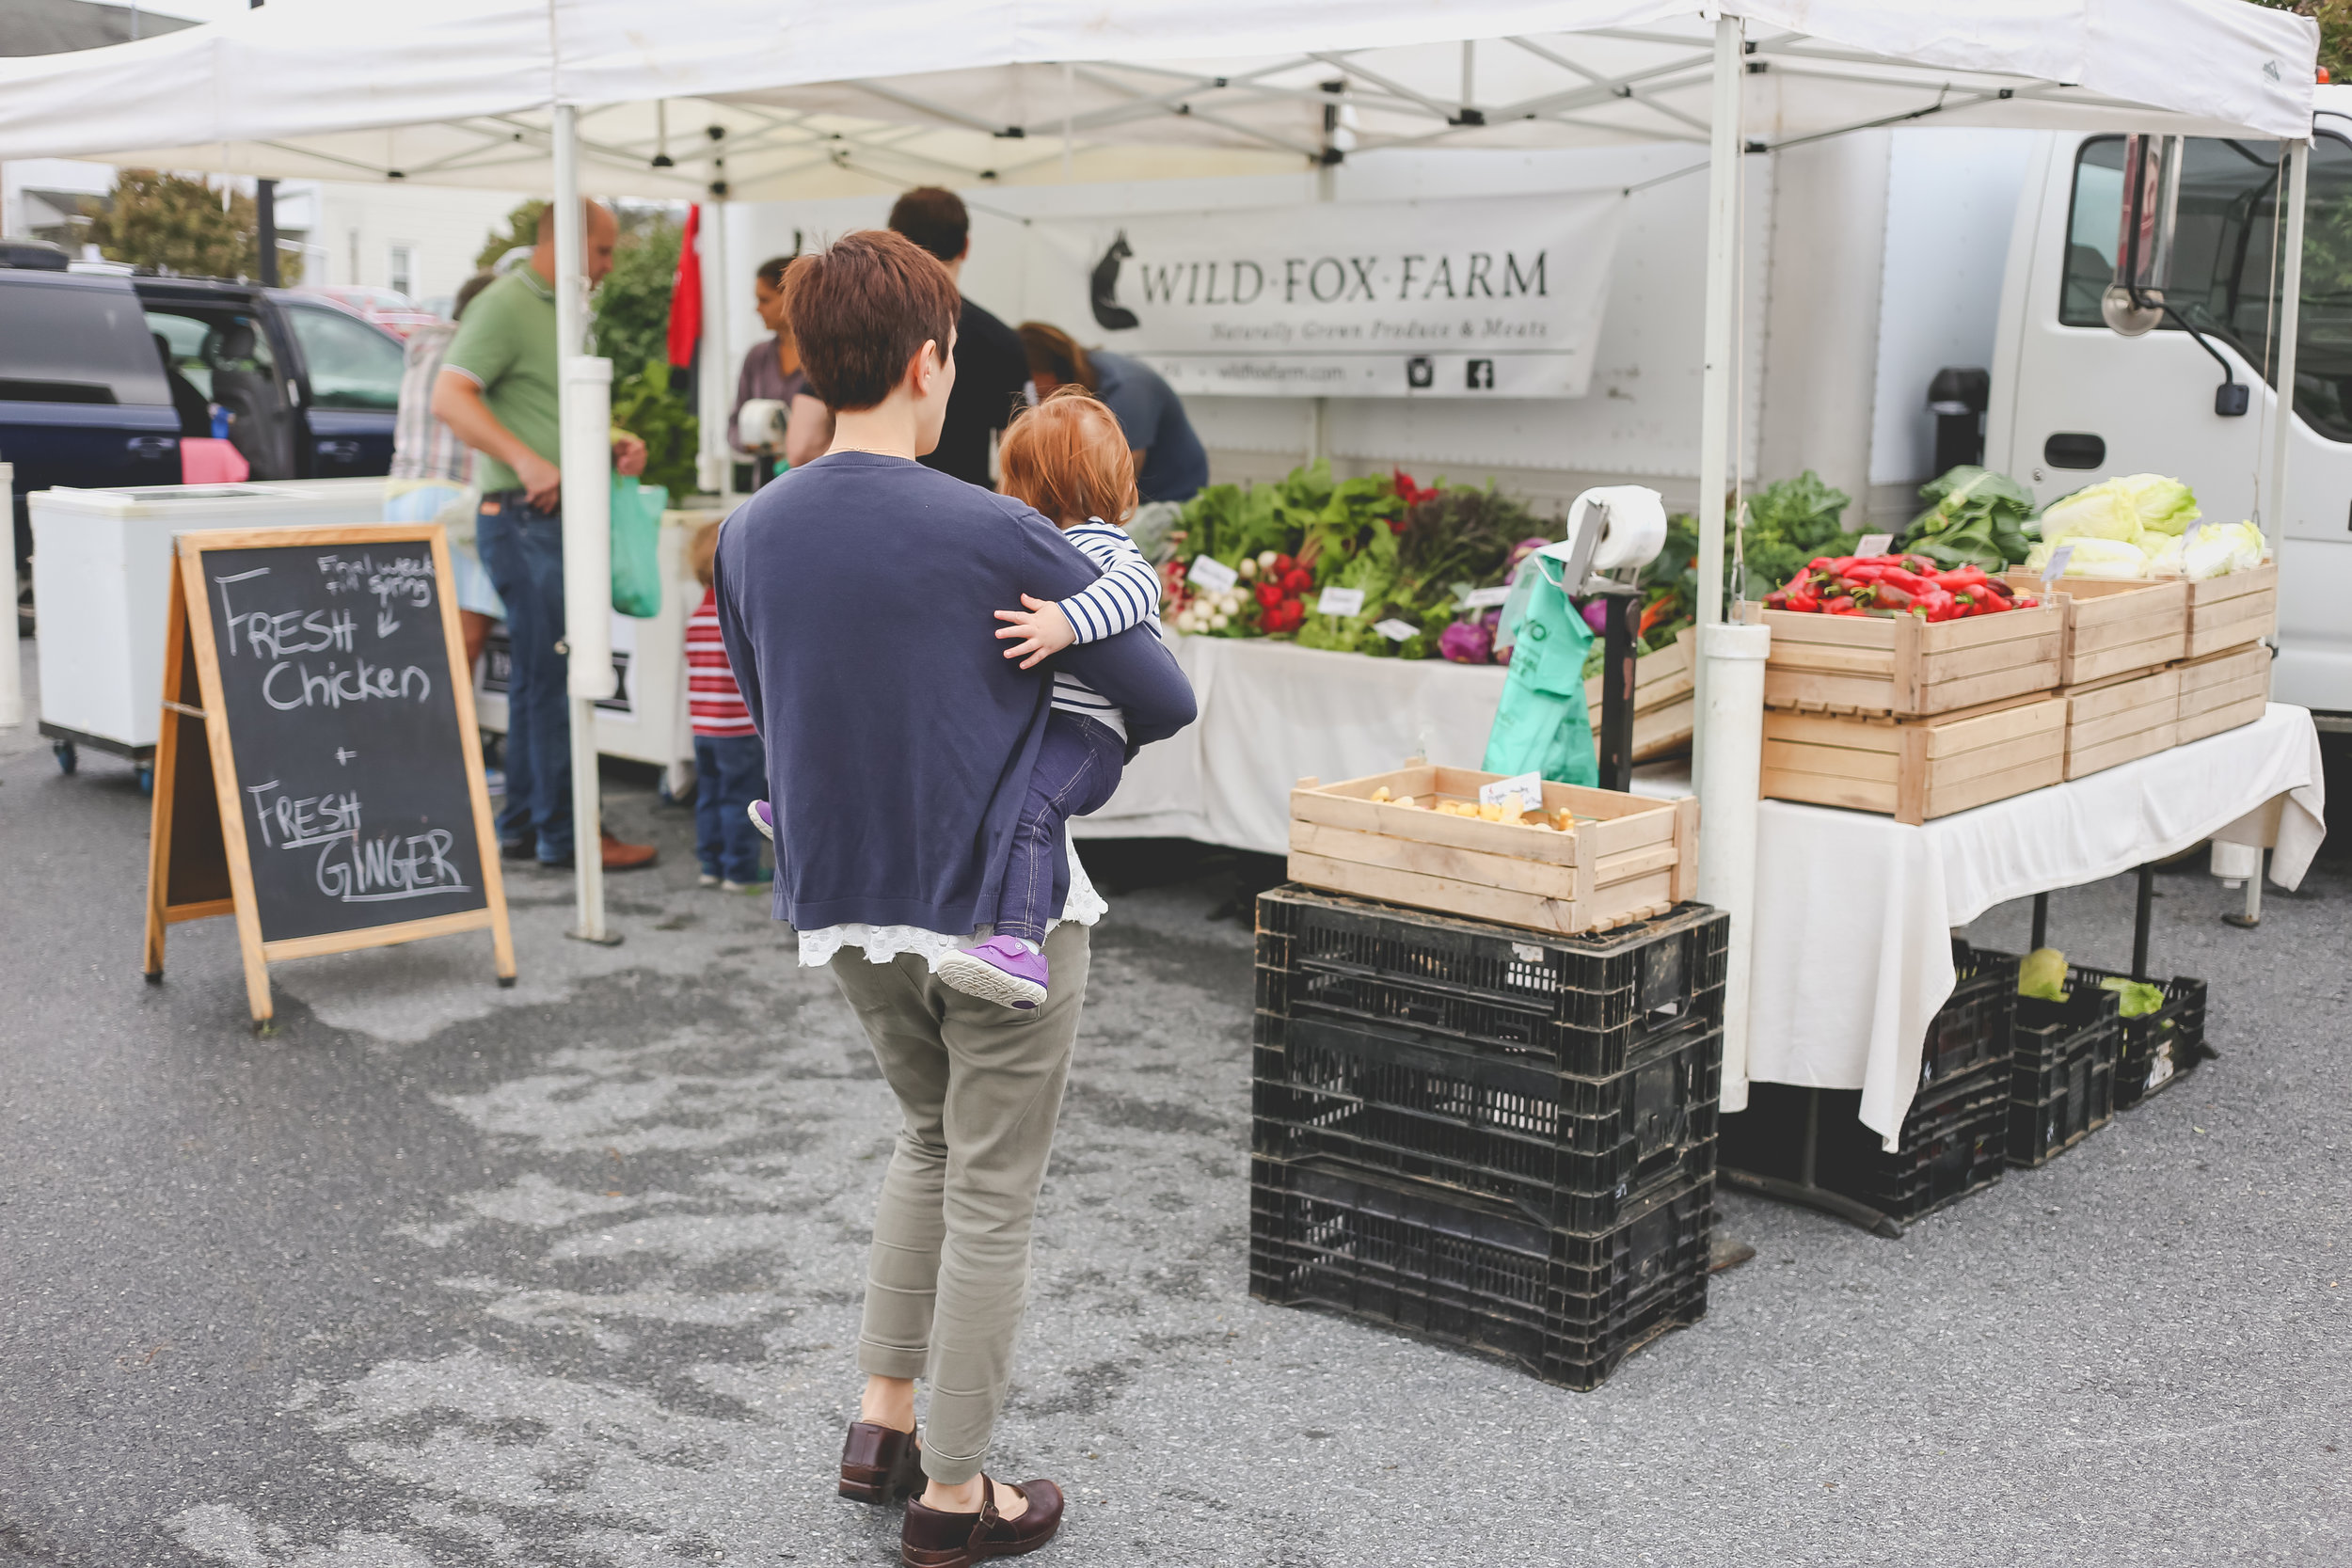 Mother with baby at the Emmaus Farmer's Market, Pennsylvania. Lehigh Valley Documentary Family Photographer.